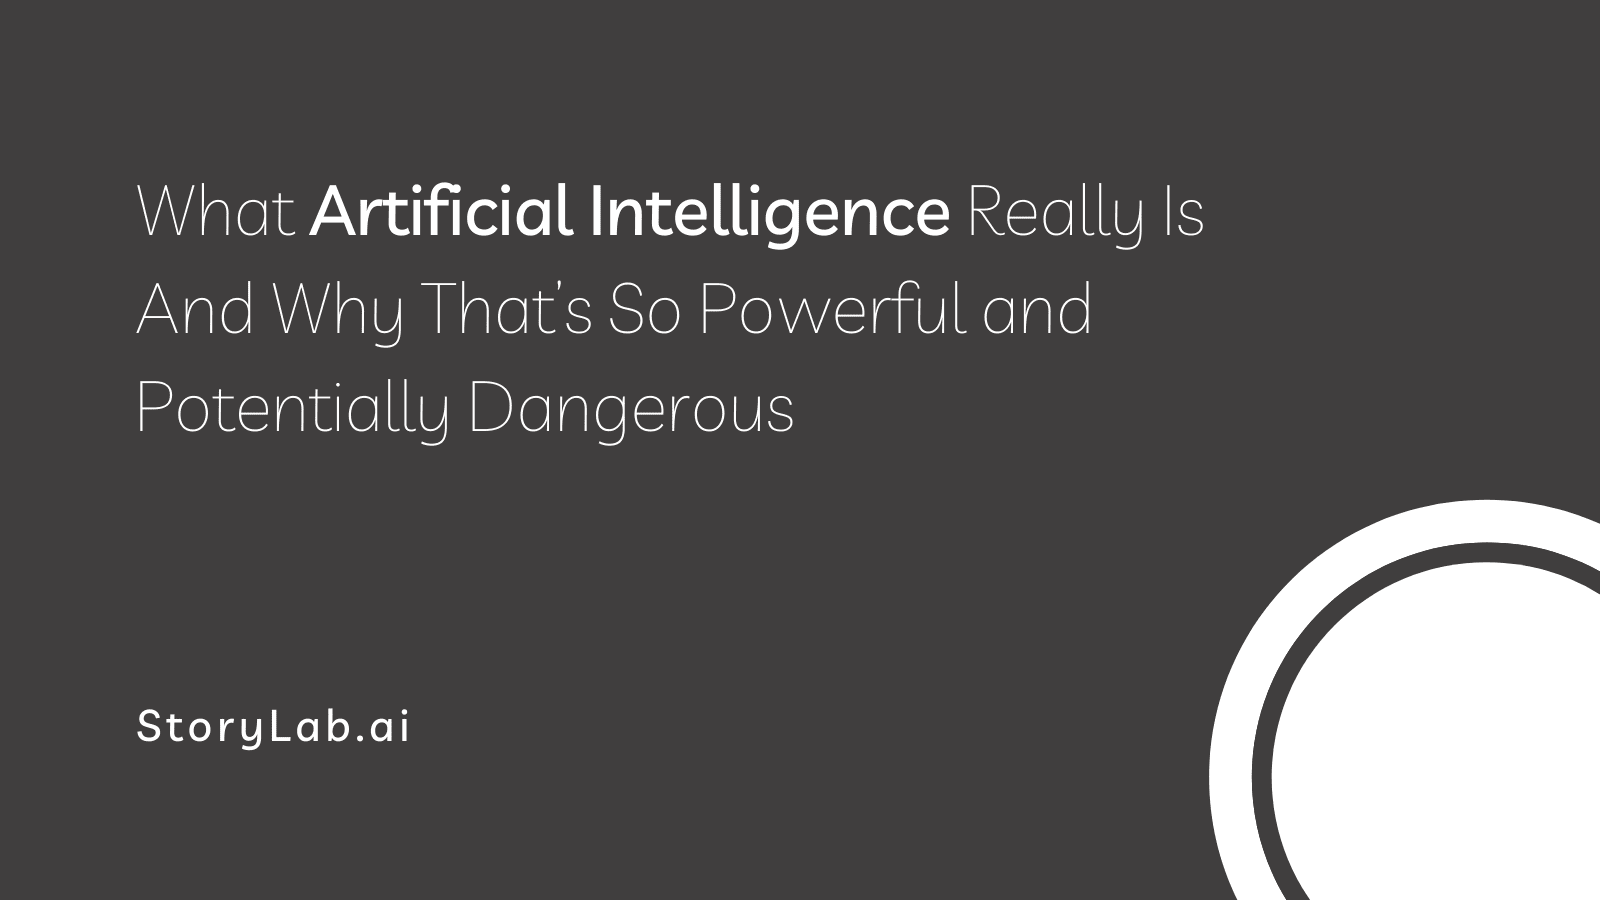 What Artificial Intelligence Really Is And Why That's So Powerful and Potentially Dangerous